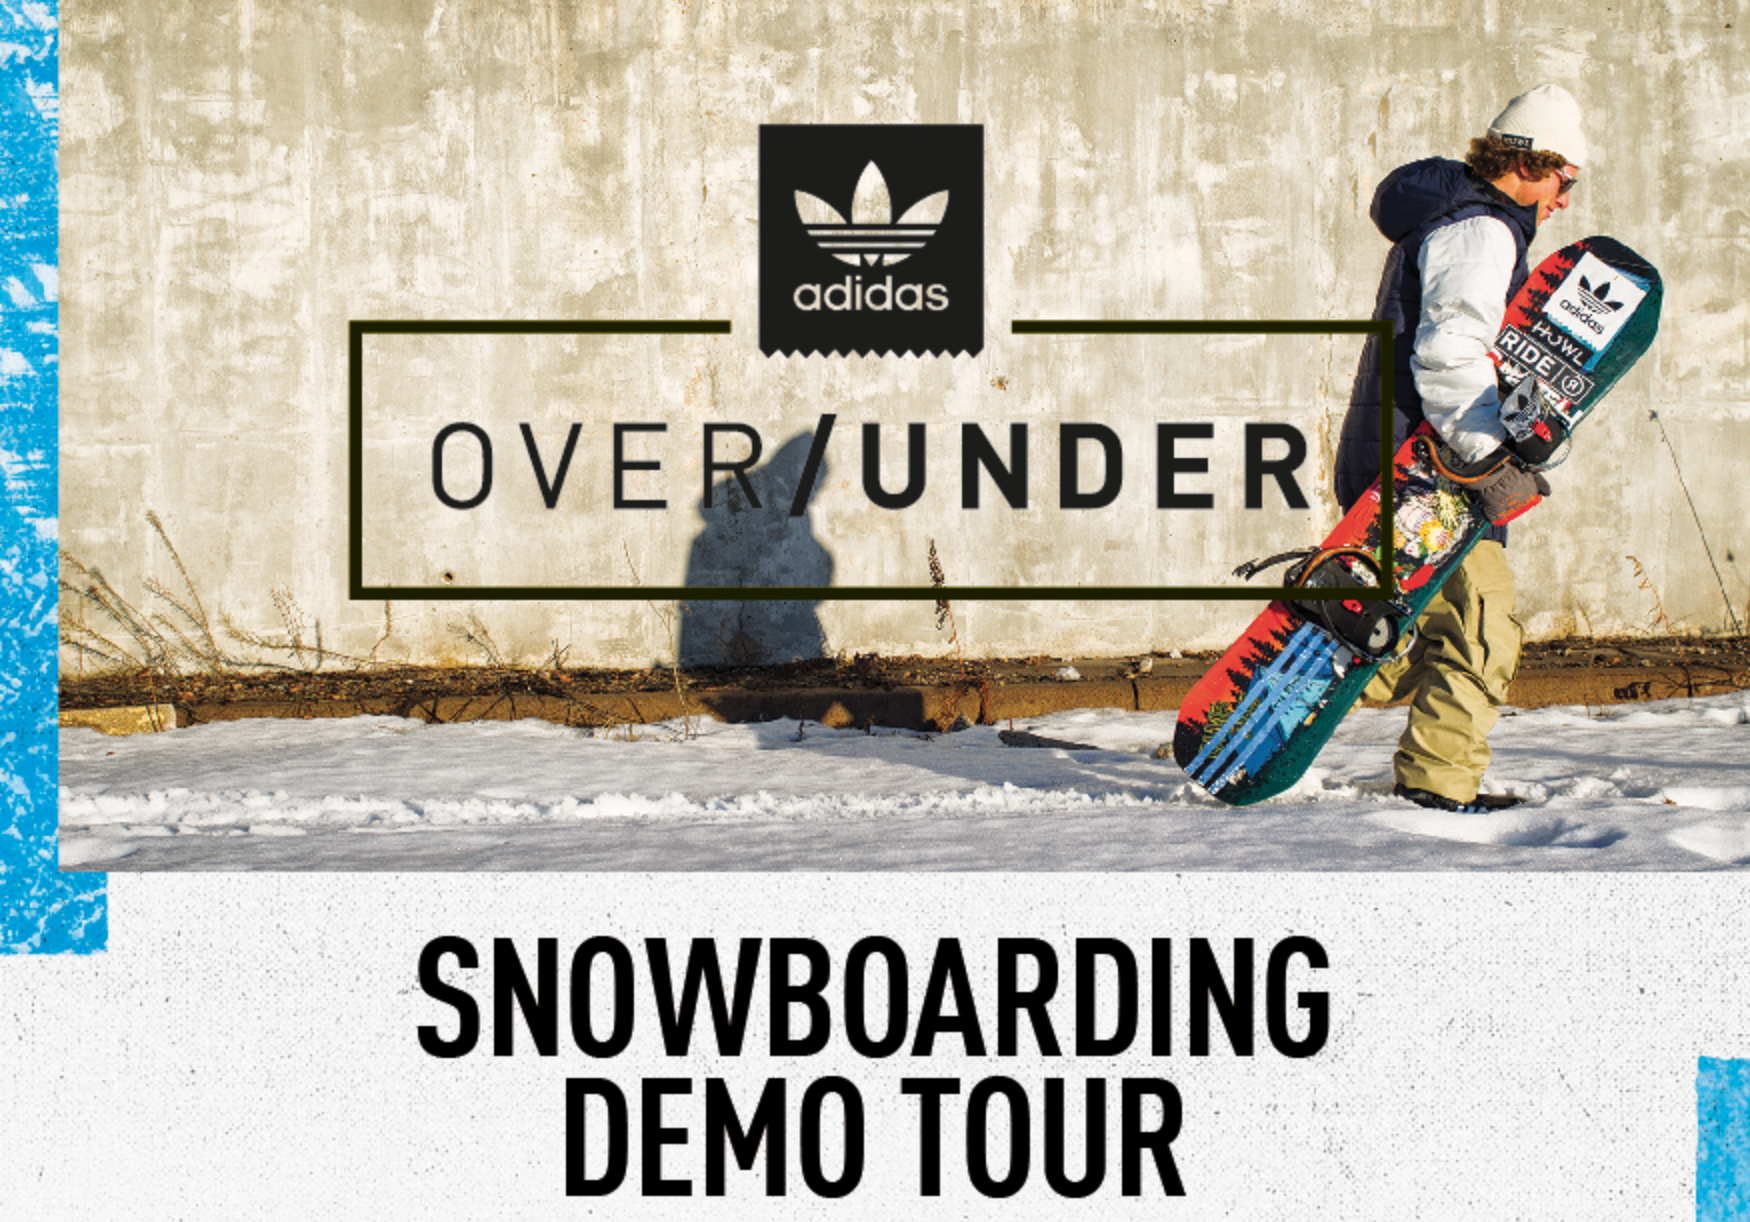 The Adidas Over/Under UK demo tour 2016